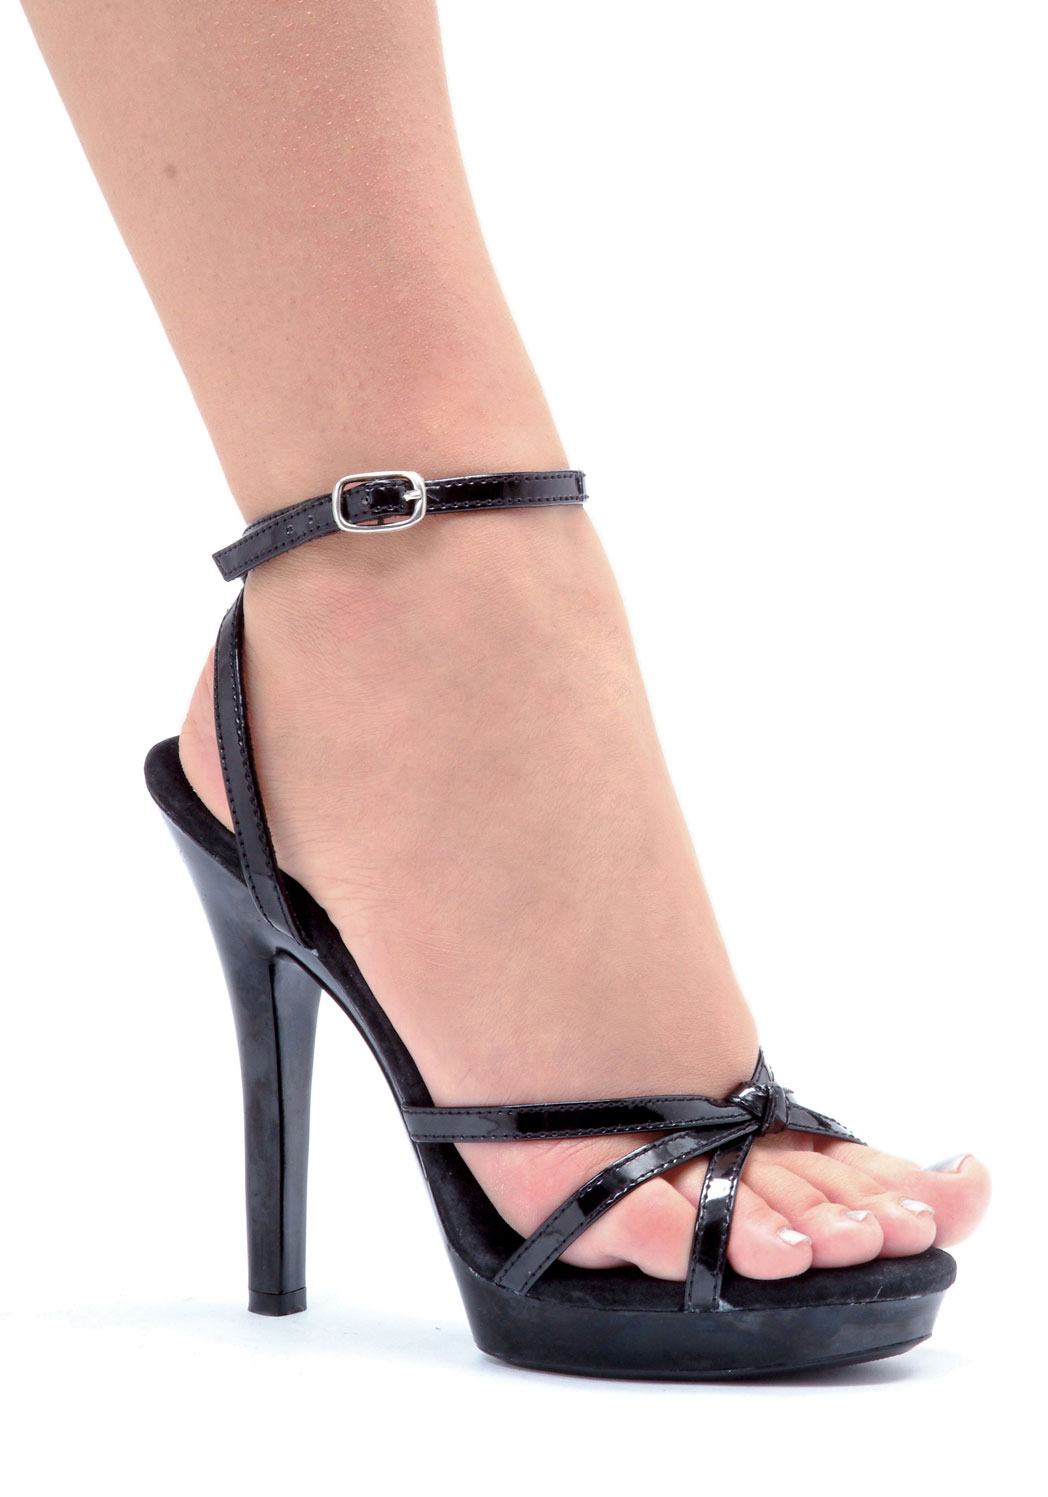 Find thong sandals with heels at ShopStyle. Shop the latest collection of thong sandals with heels from the most popular stores - all in one place.